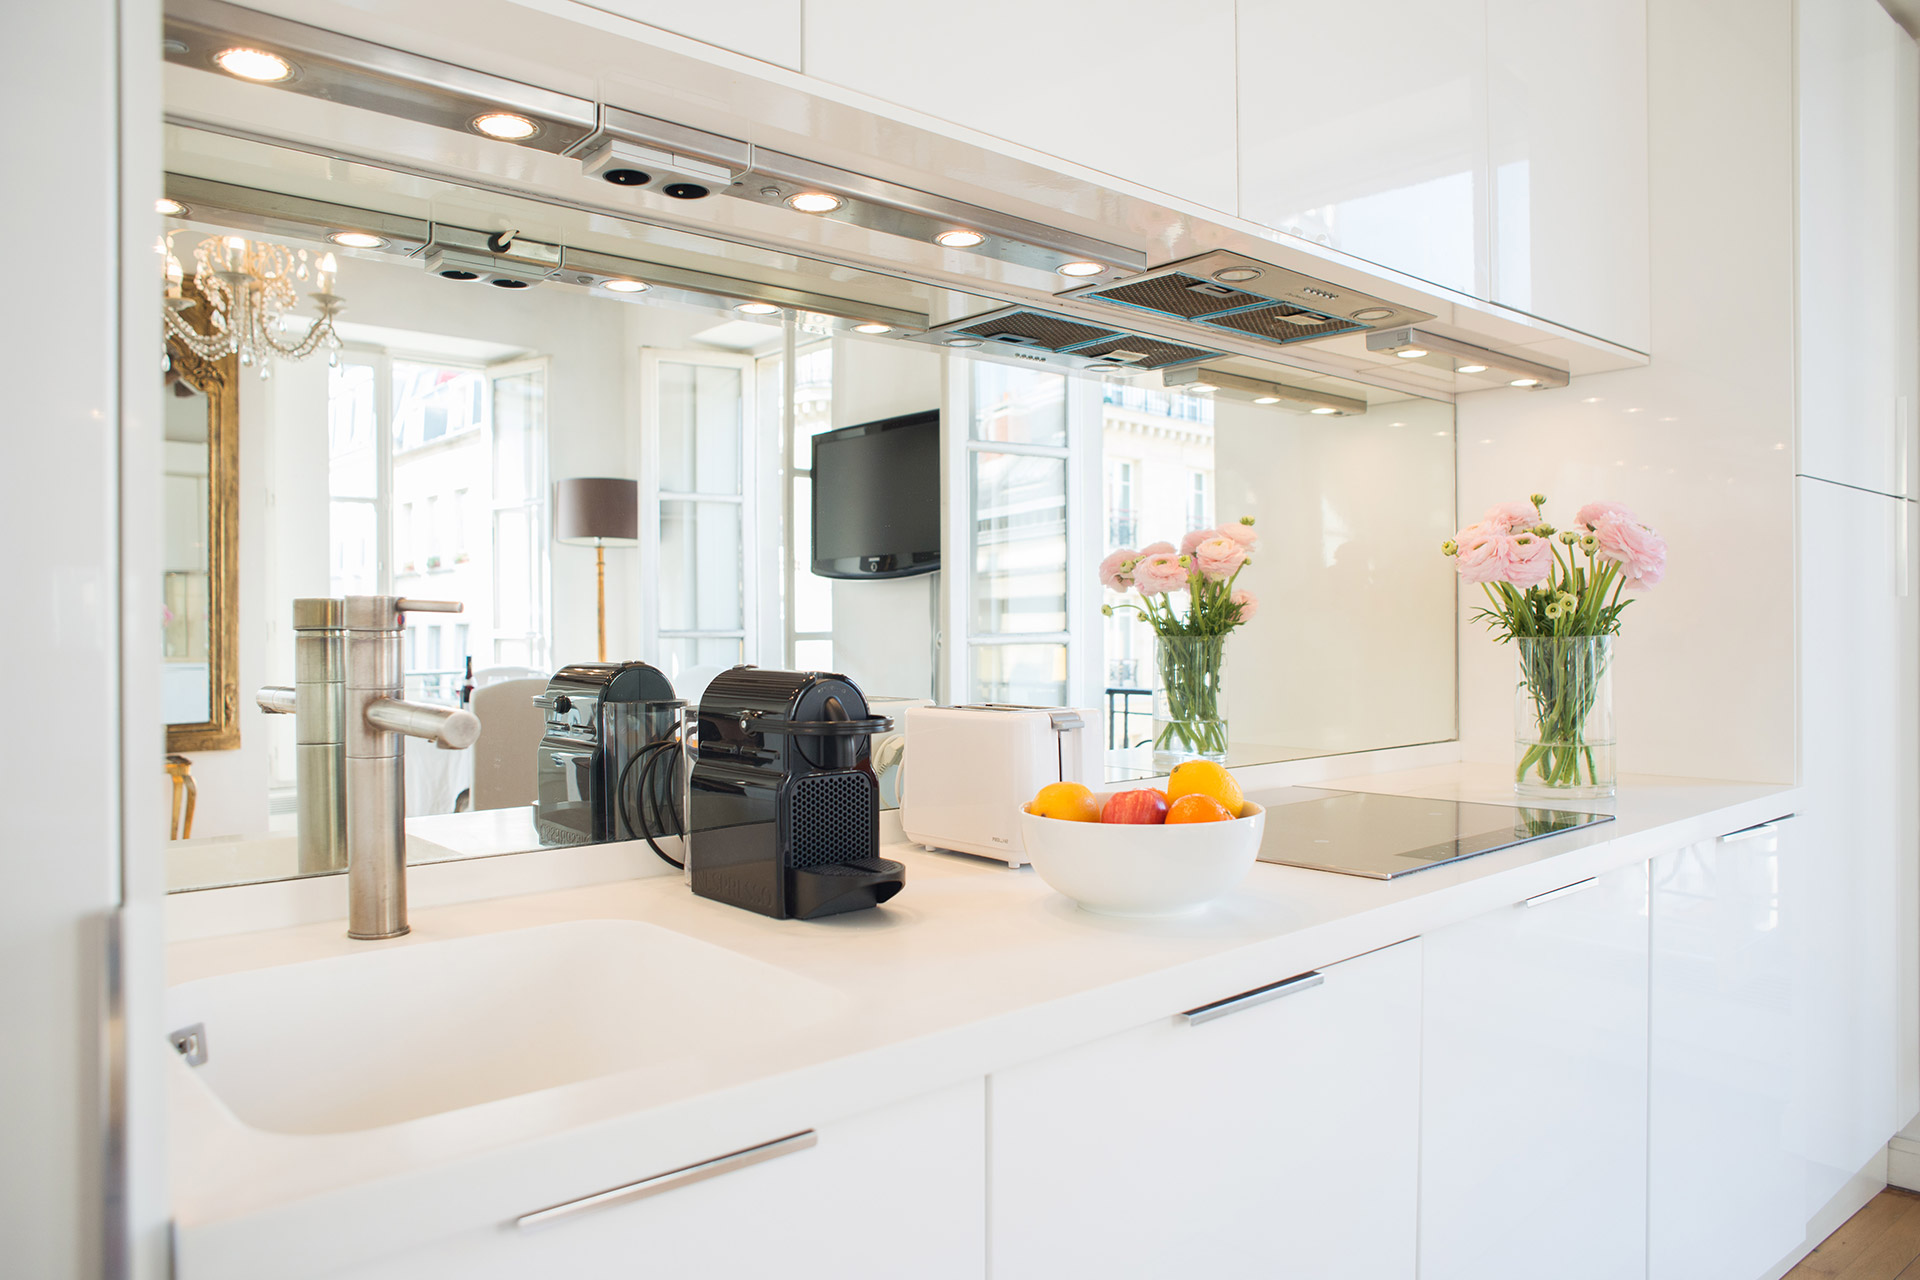 Fully-equipped kitchen in the Forez vacation rental offered by Paris Perfect